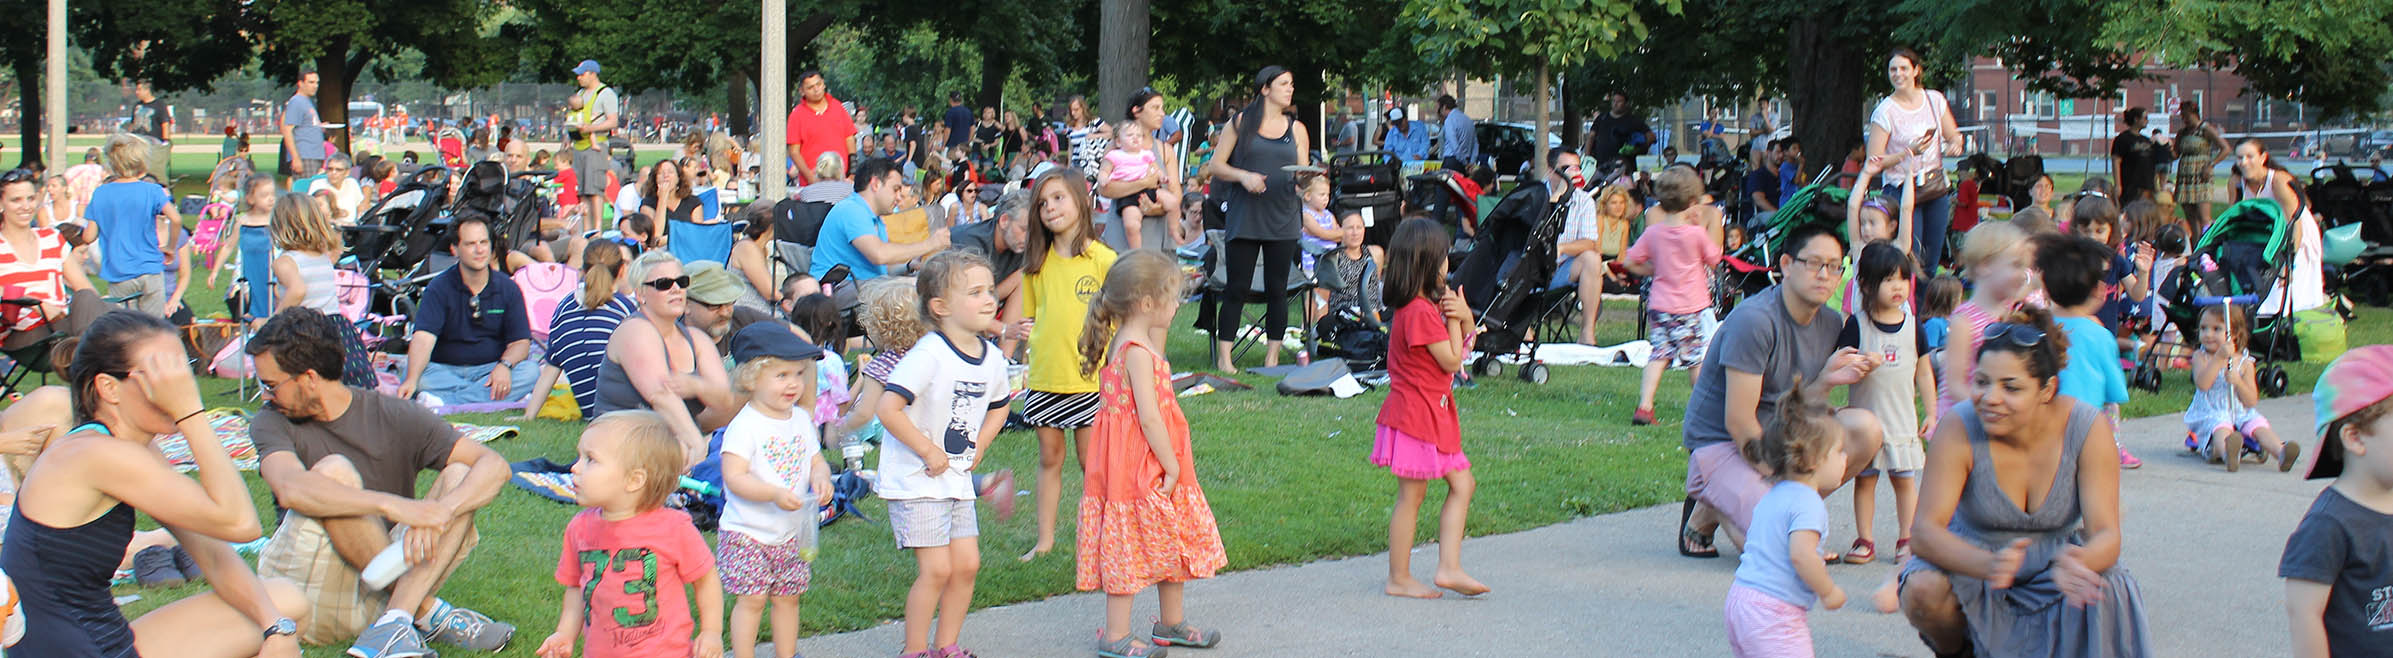 Welles Park Concert in the Park